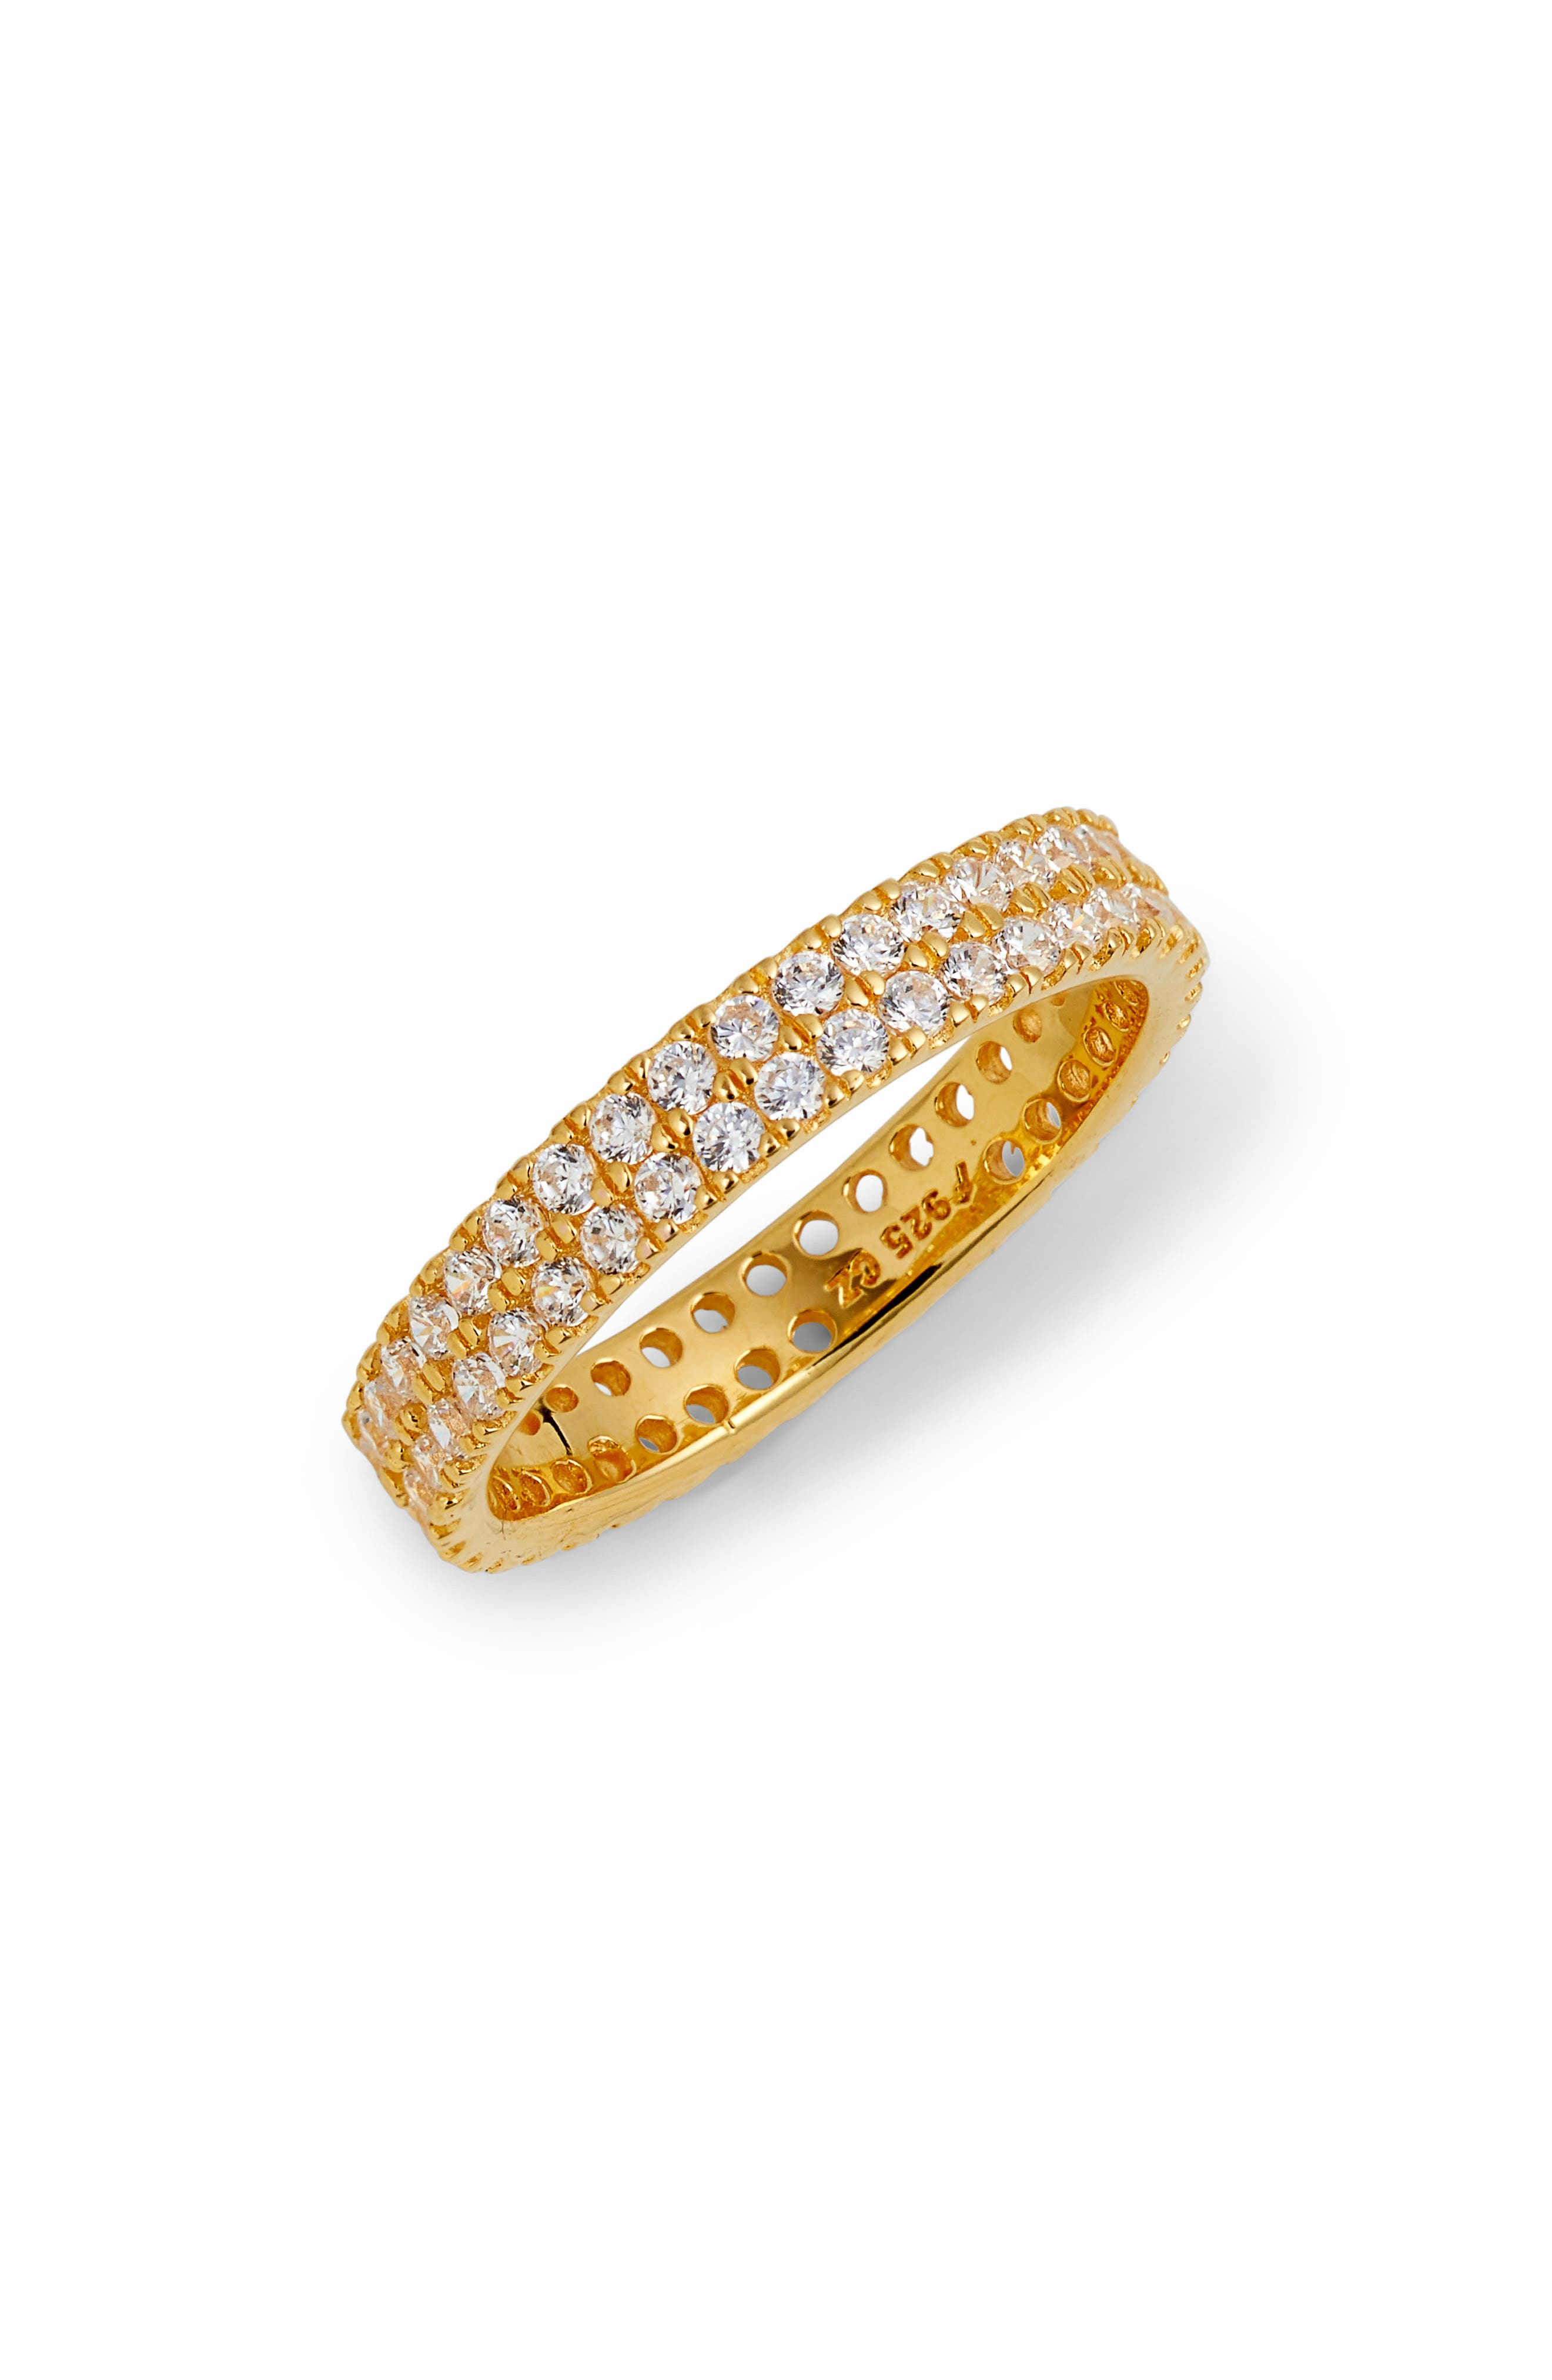 Double Eternity Band Ring,                             Main thumbnail 1, color,                             Gold